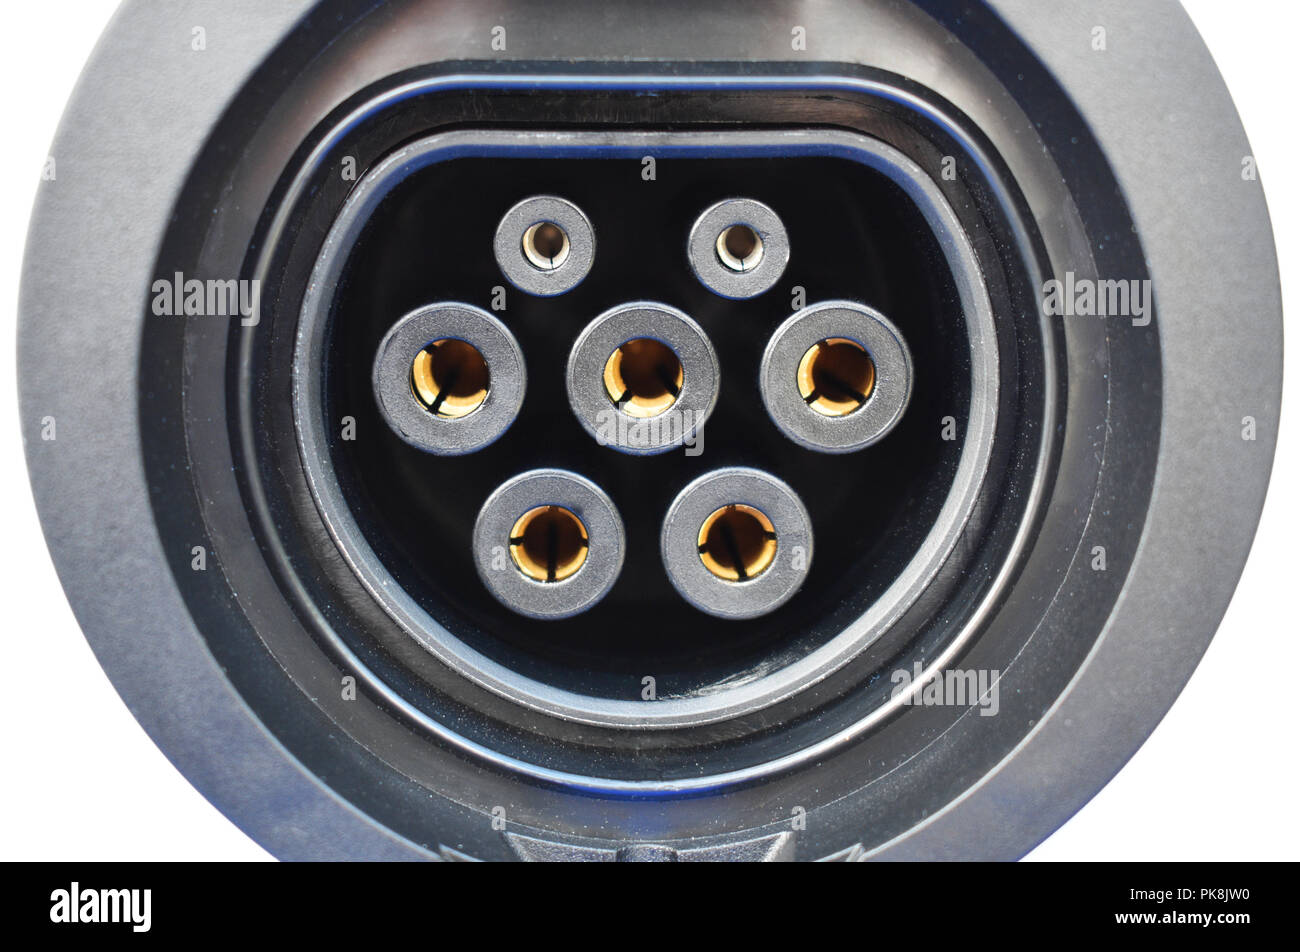 Electric vehicle EV / electric car charging point - Stock Image